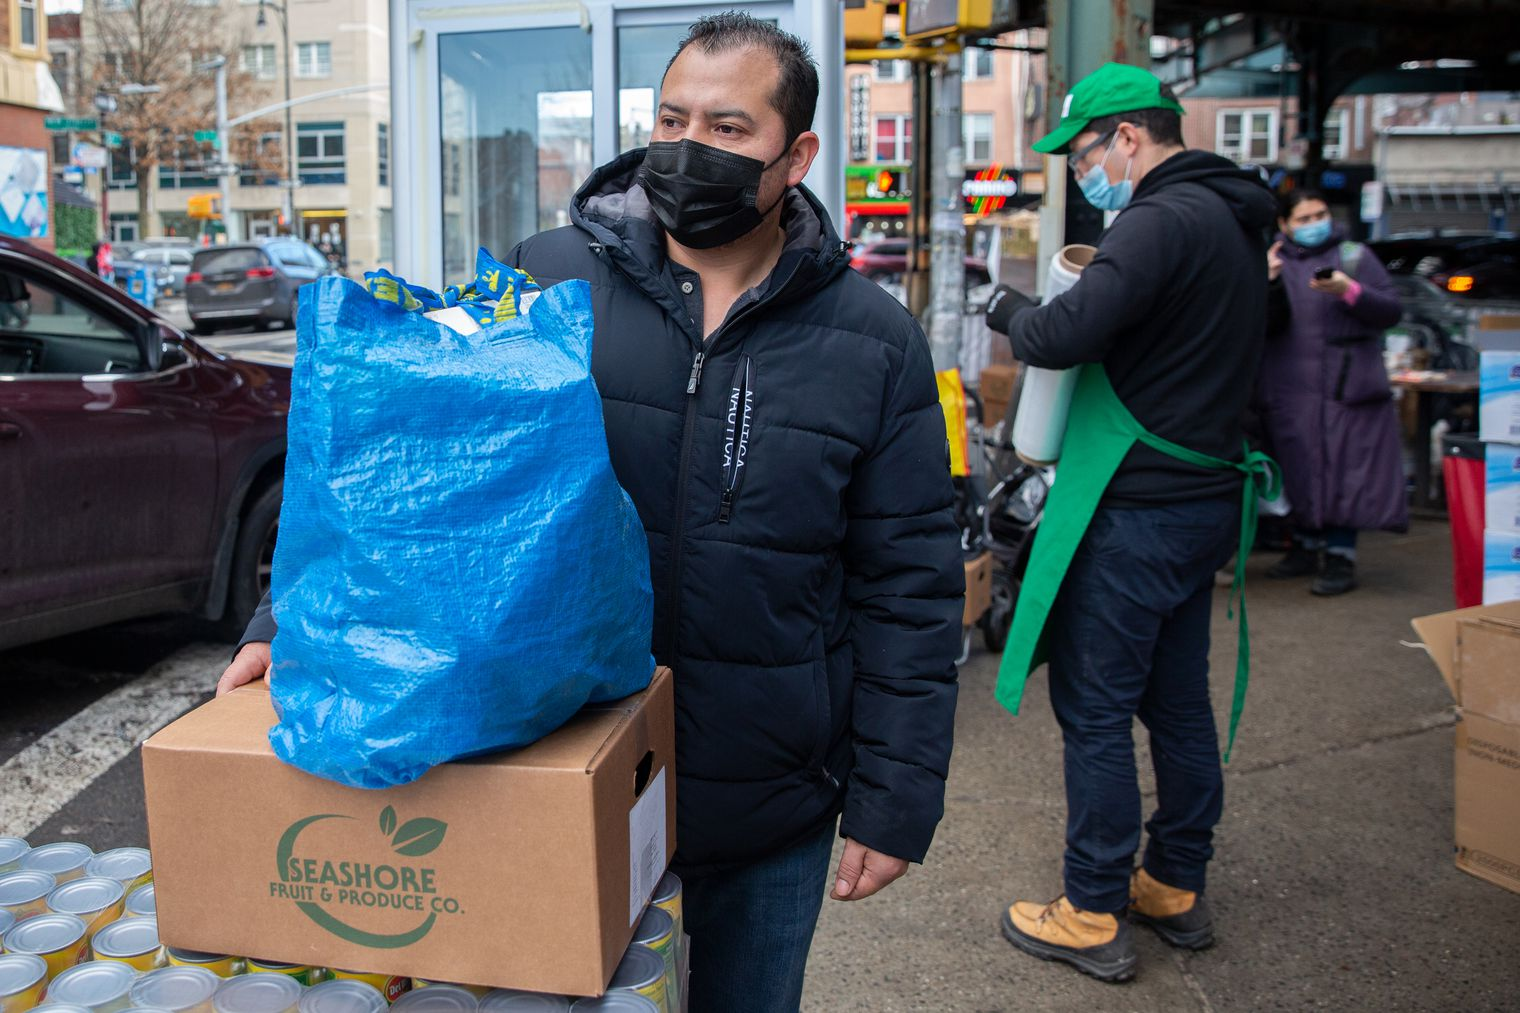 Marcelino Cabrera unemployed due to the coronavirus thanks Masbia for helping those in need with groceries to feed their families